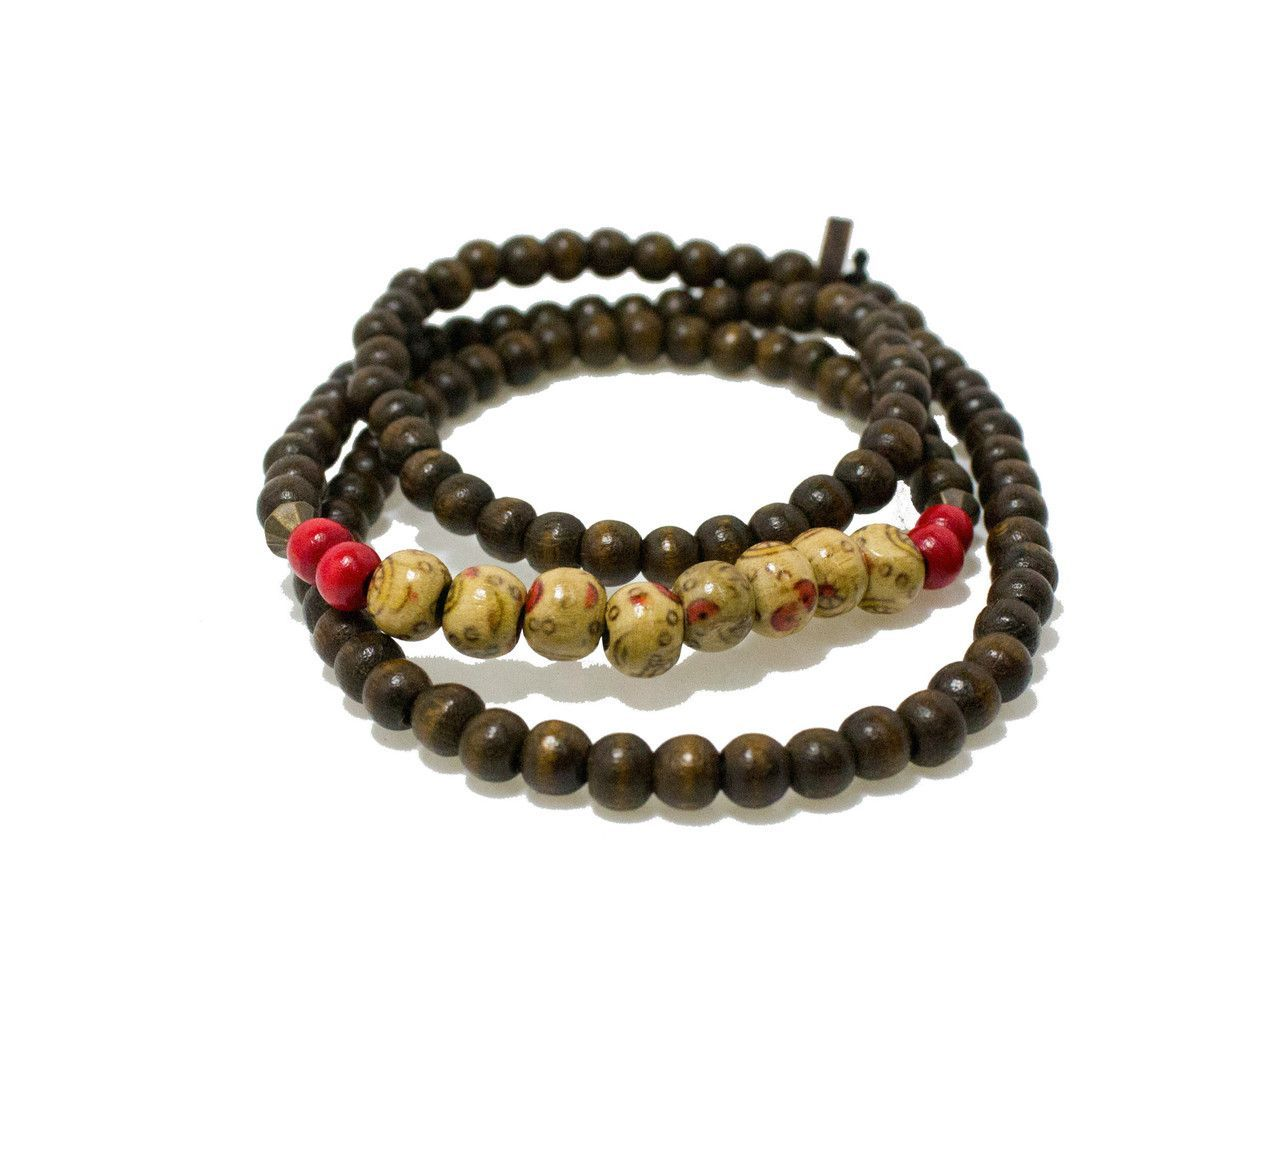 Wood Misae Wrap Bracelet From Goodwood Nyc